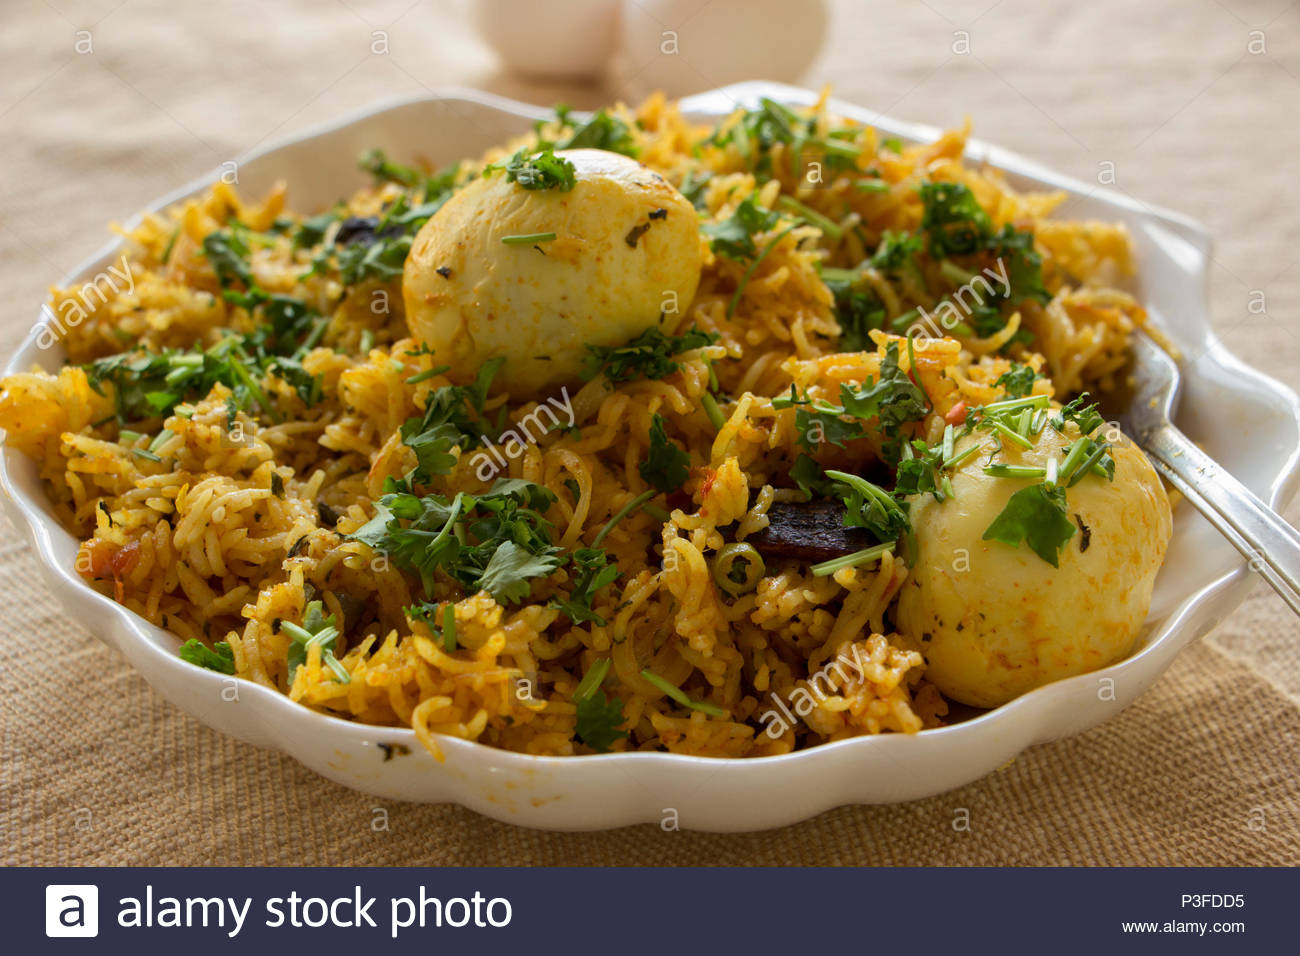 Egg biryani is a quick, flavourful and delicious rice based dish from India. - Stock Image